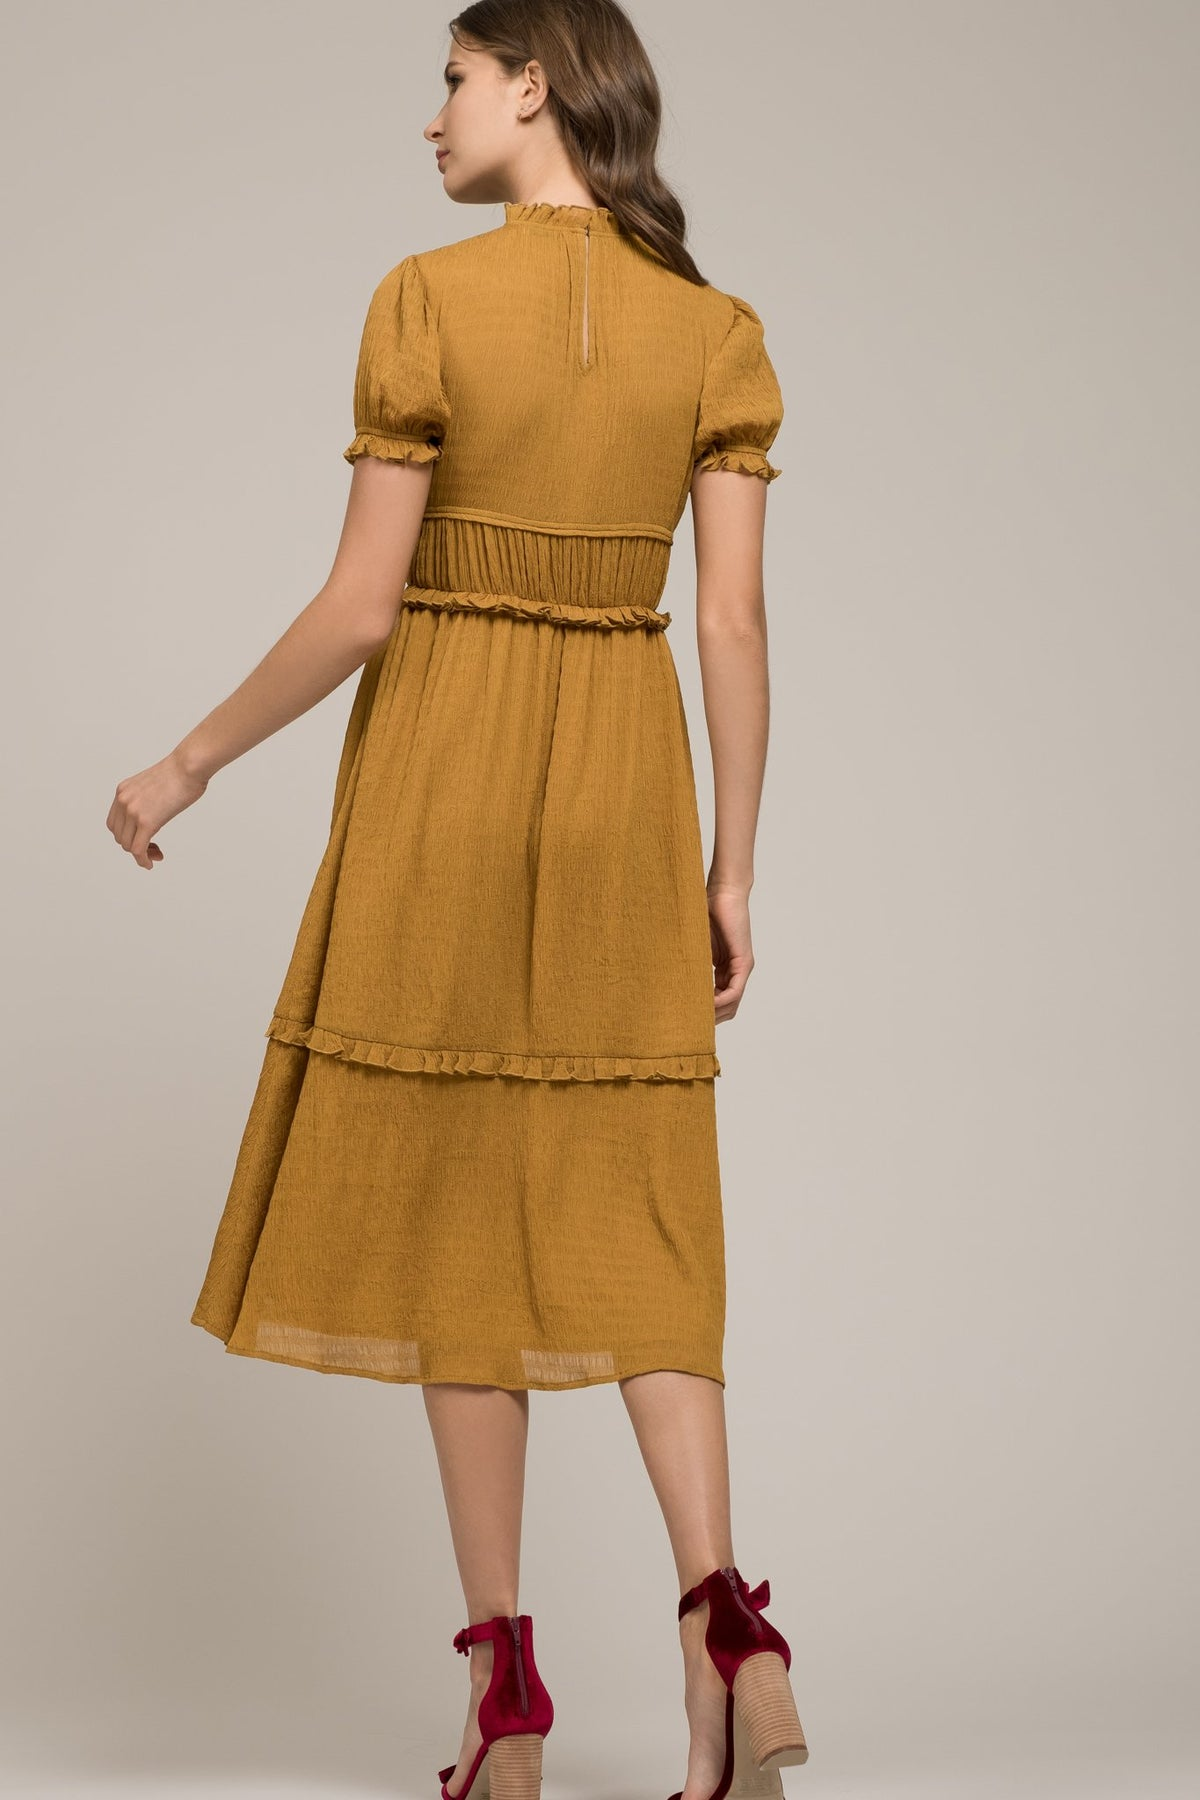 Short Sleeve Maxi Dress - Refinery